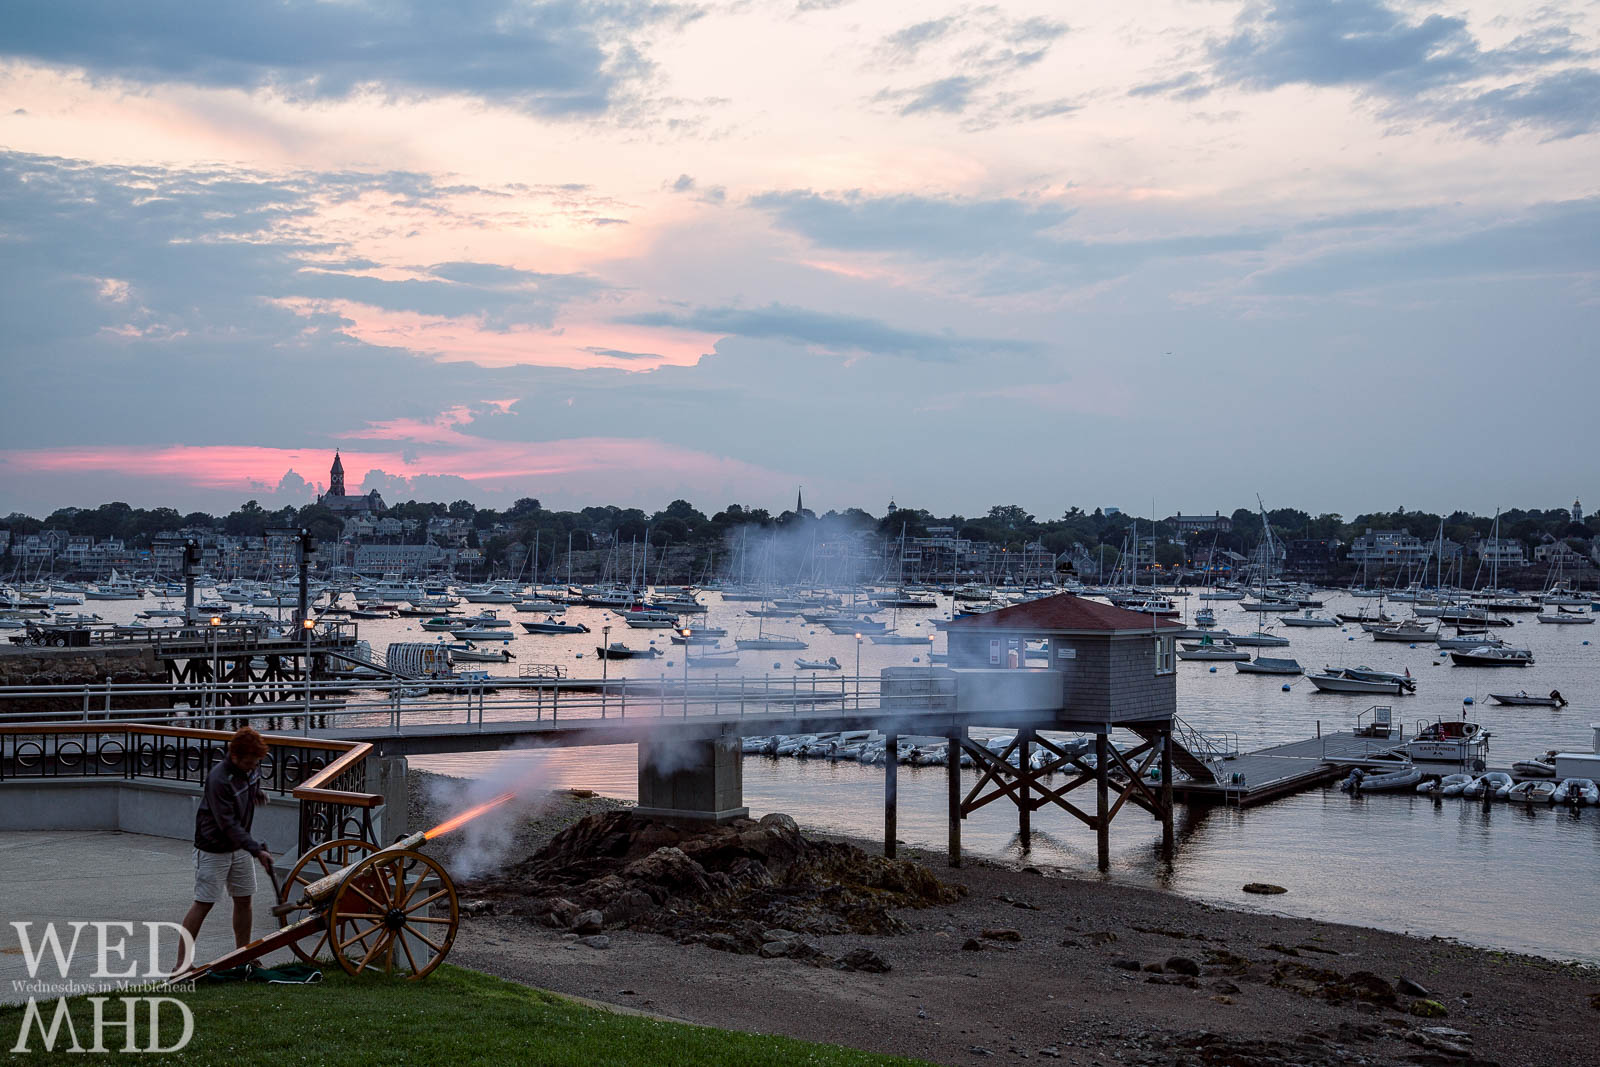 The sunset cannon is fired at sunset throughout the Summer by the five yacht clubs surrounding Marblehead Harbor